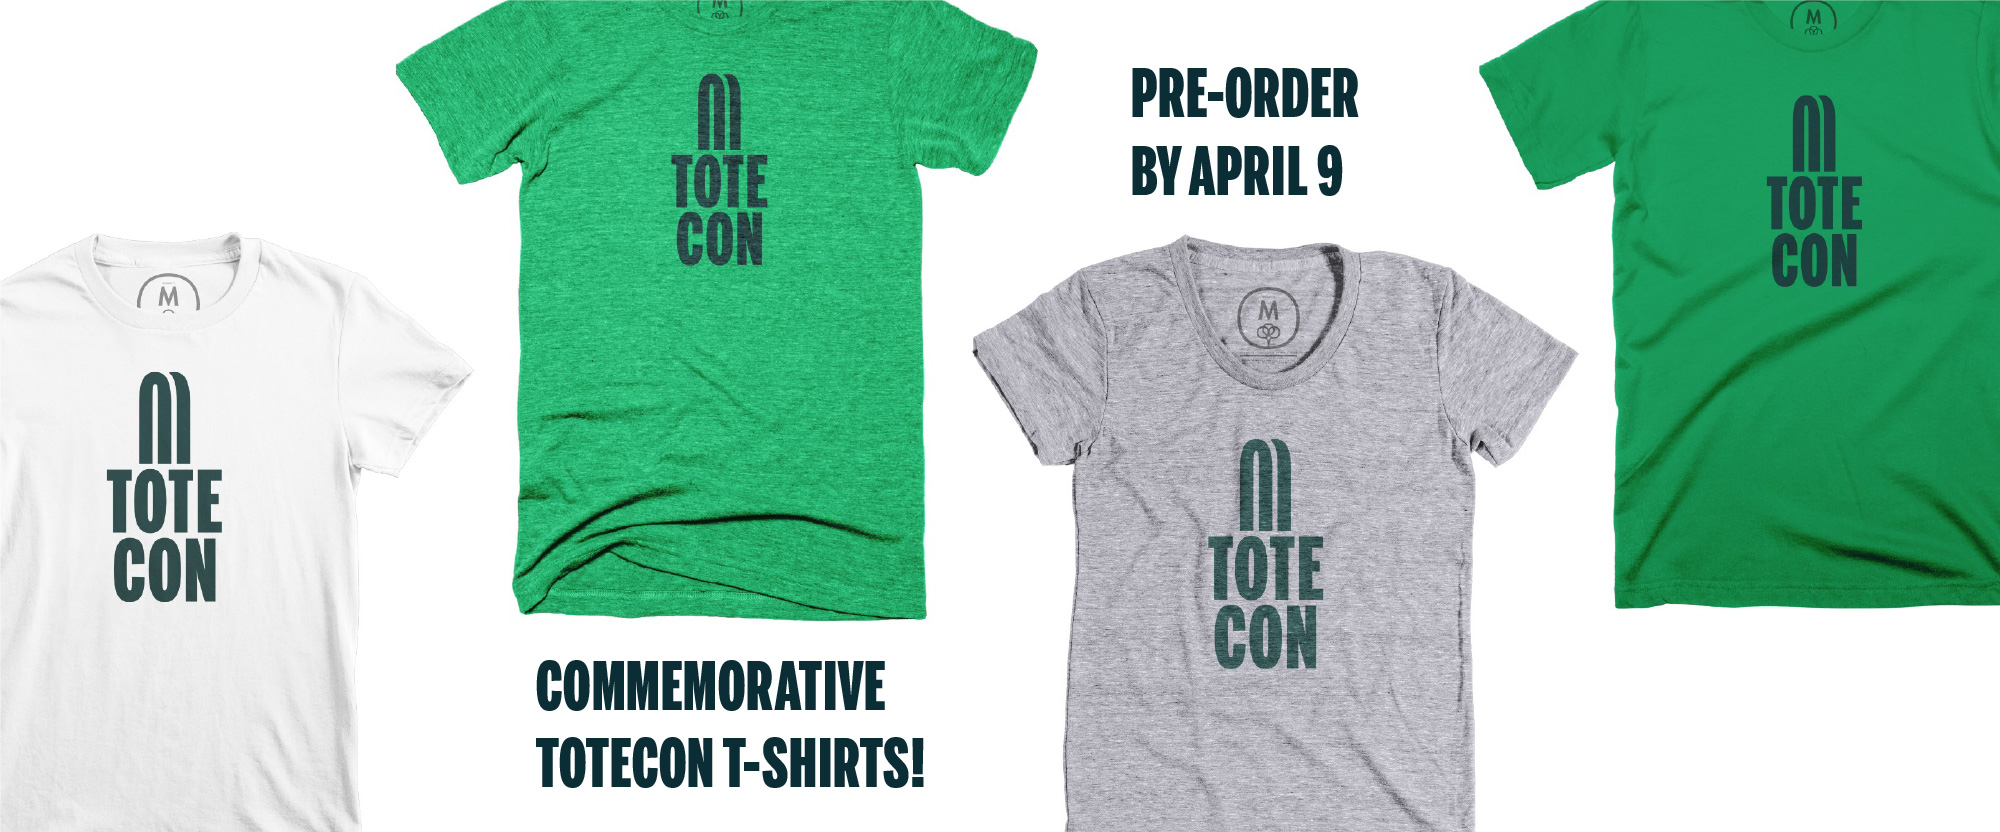 ToteCon T-shirts (for Real!)